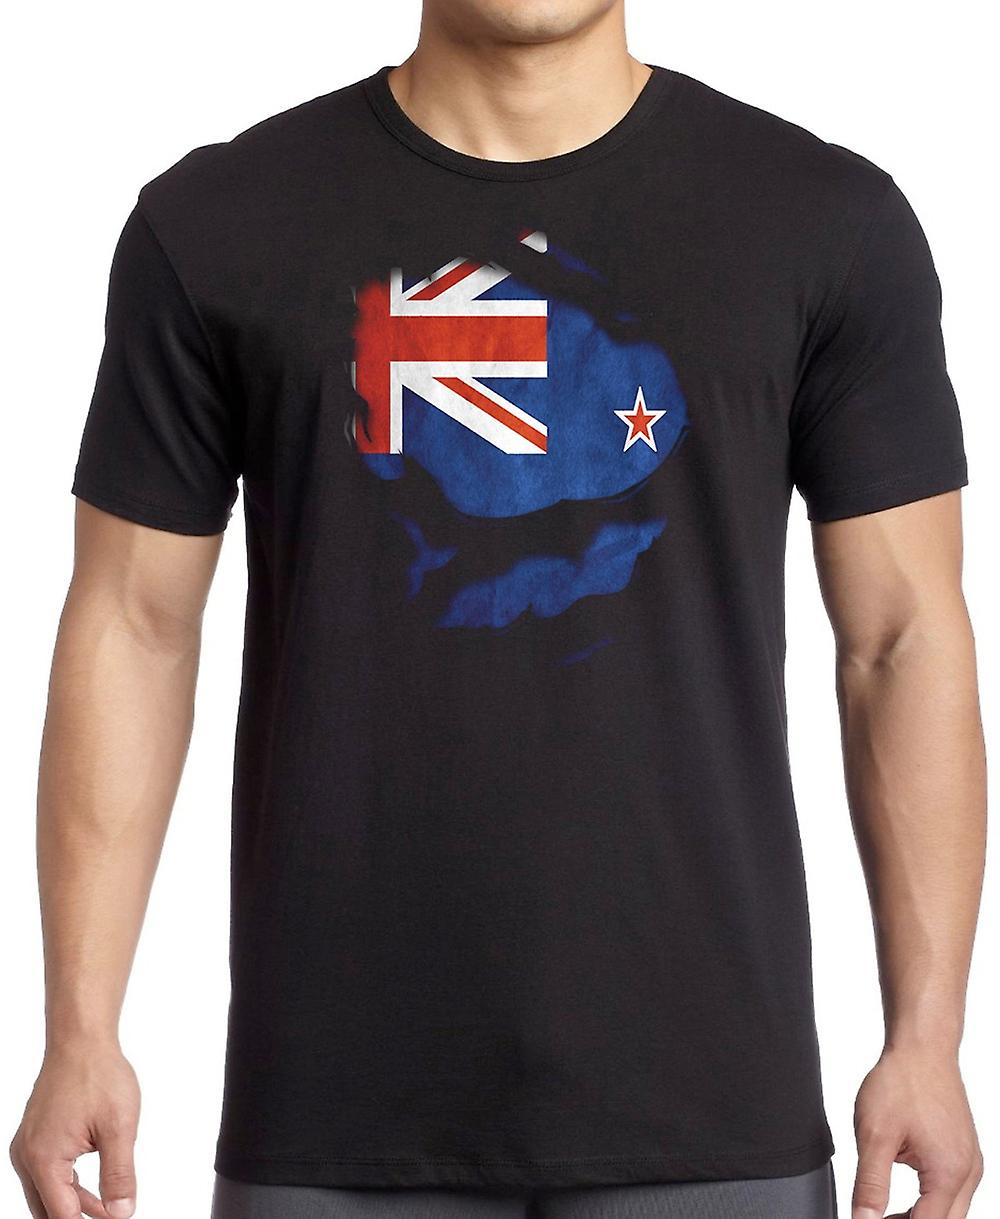 New Zealand Kiwi Ripped Effect Under Shirt T Shirt